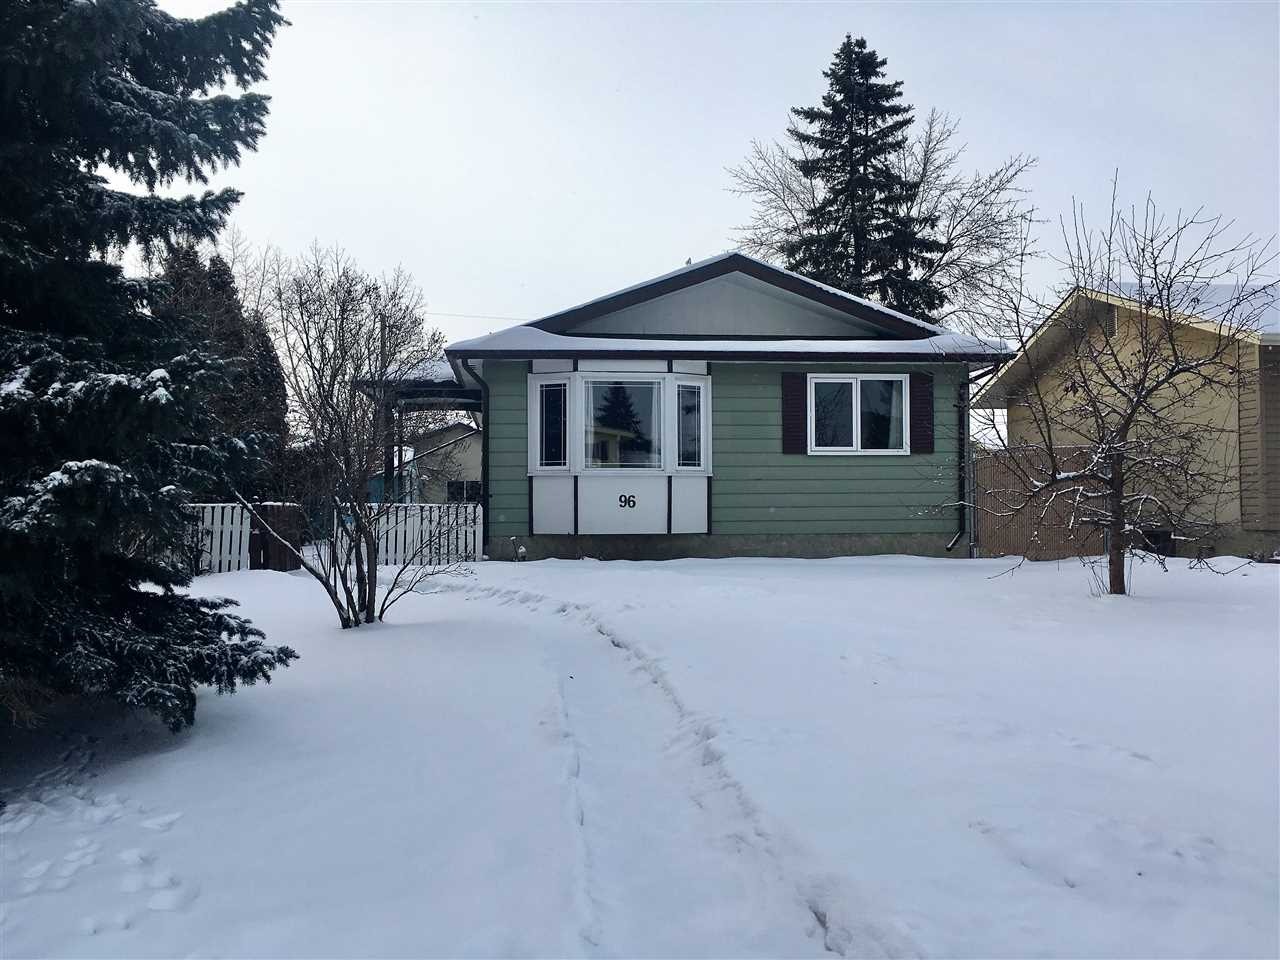 Great value with this 1013sq ft fully finished 3+1 bedroom, 2 bathroom bungalow in Corinthia Park. Some expensive upgrade have already been completed for you such as a newer high efficient furnace, hot water tank, interlocking shingles with a 50 year warranty and new vinyl windows. Main floor upgrades include a newer maple kitchen with a built in pantry, newer counters, sink & tile. Laminate floors in living room and bedrooms. Nice sized cozy living room with bay window. Finished basement offers family room with a wood burning stove, 4th bedroom, a den for office space, craft or smaller play area and a 3pce bathroom with stand up shower. Bonus of central air, allowing you to sleep peacefully all summer long. Fenced backyard with mature trees and space for RV parking. Double detached garage comes with 220volt wiring. Located within walking distance to an incredible French Immersion elementary school (english optional), high school and Jr high. Come check it out today!